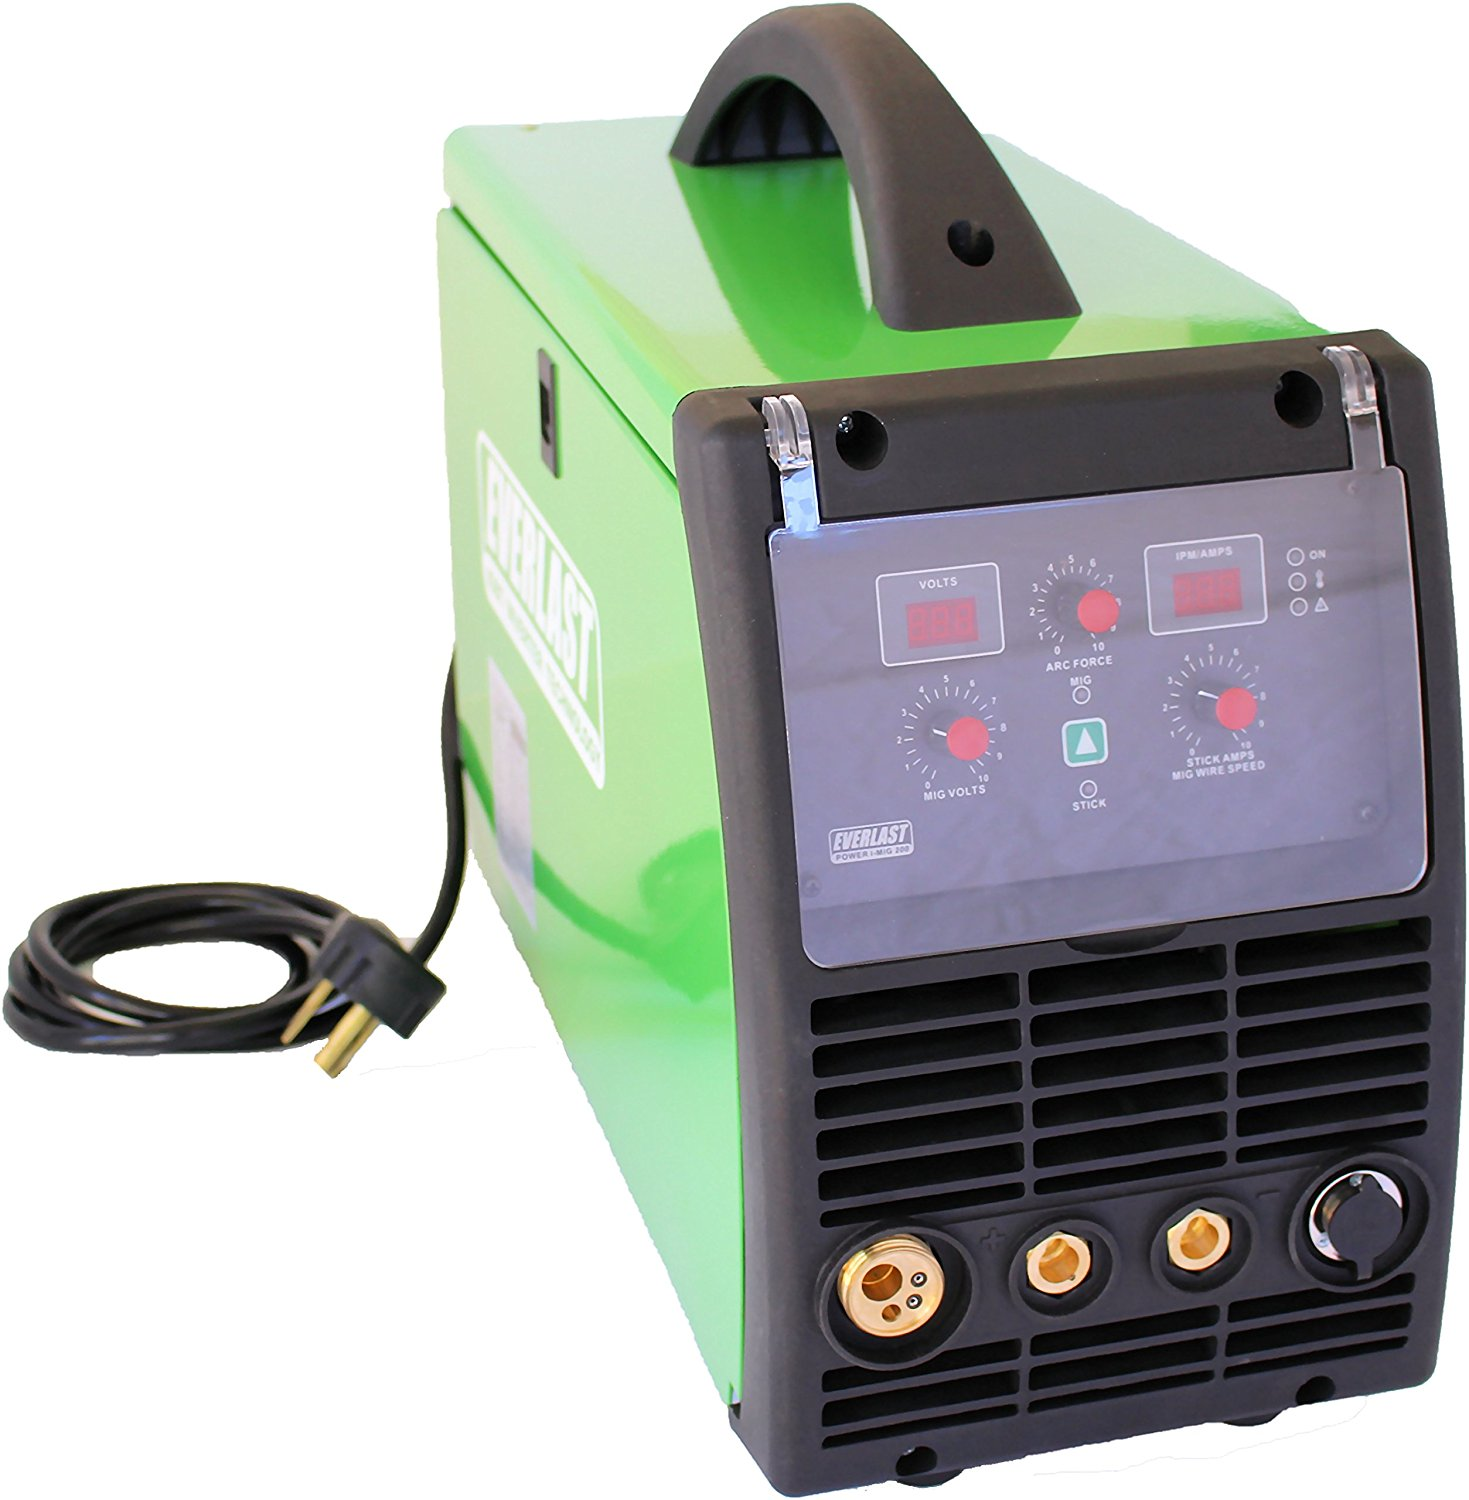 2017 Everlast PowerMIG 200amp MIG stick welder